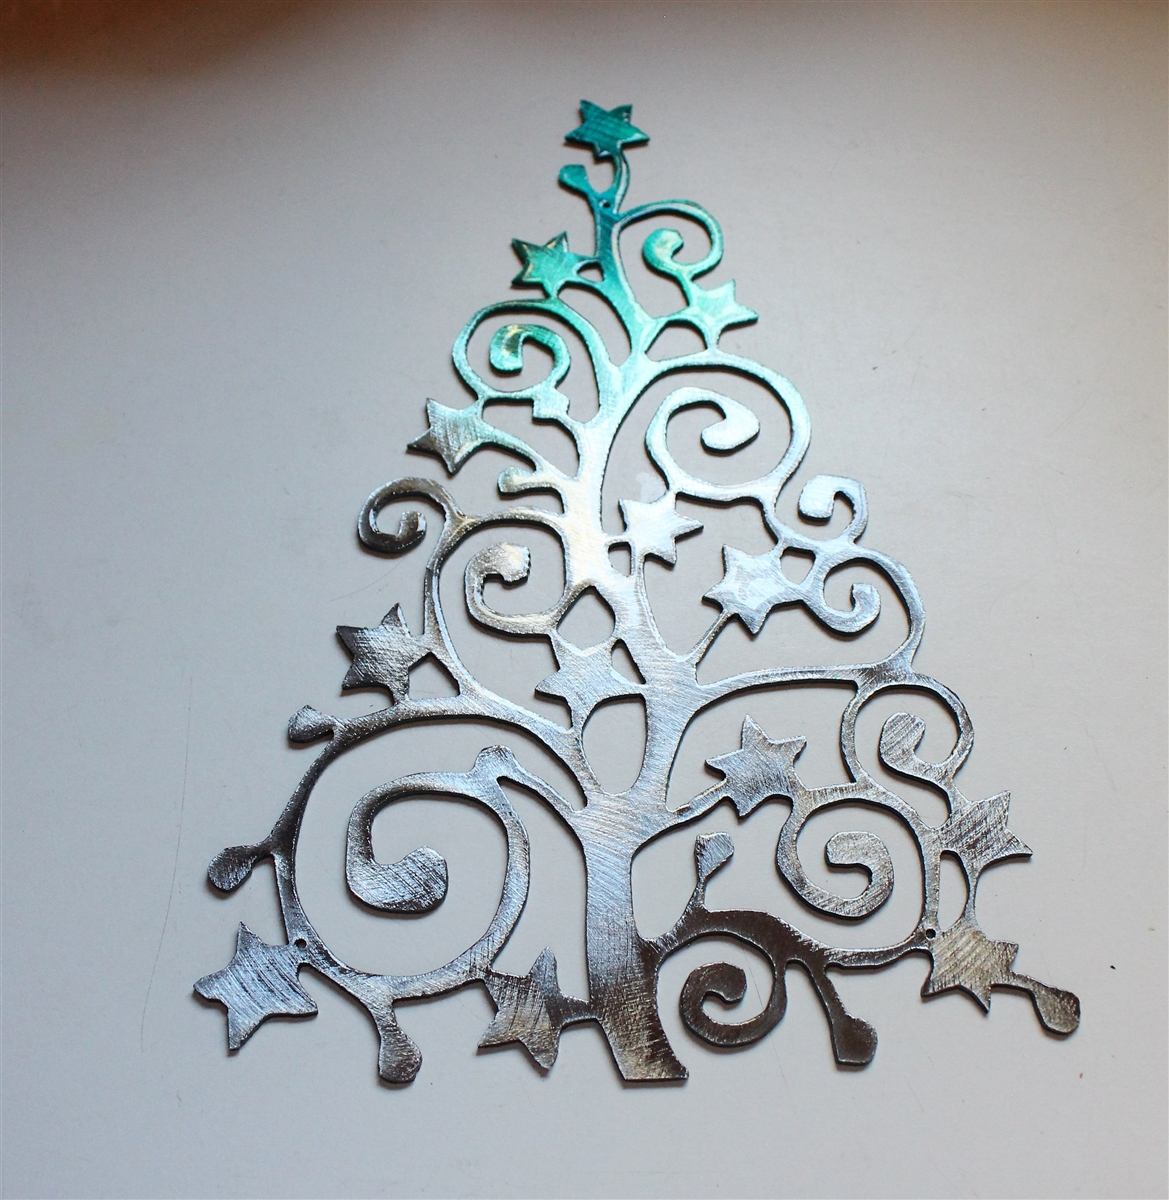 Teal Metal Wall Decor Wall Plate Design Ideas